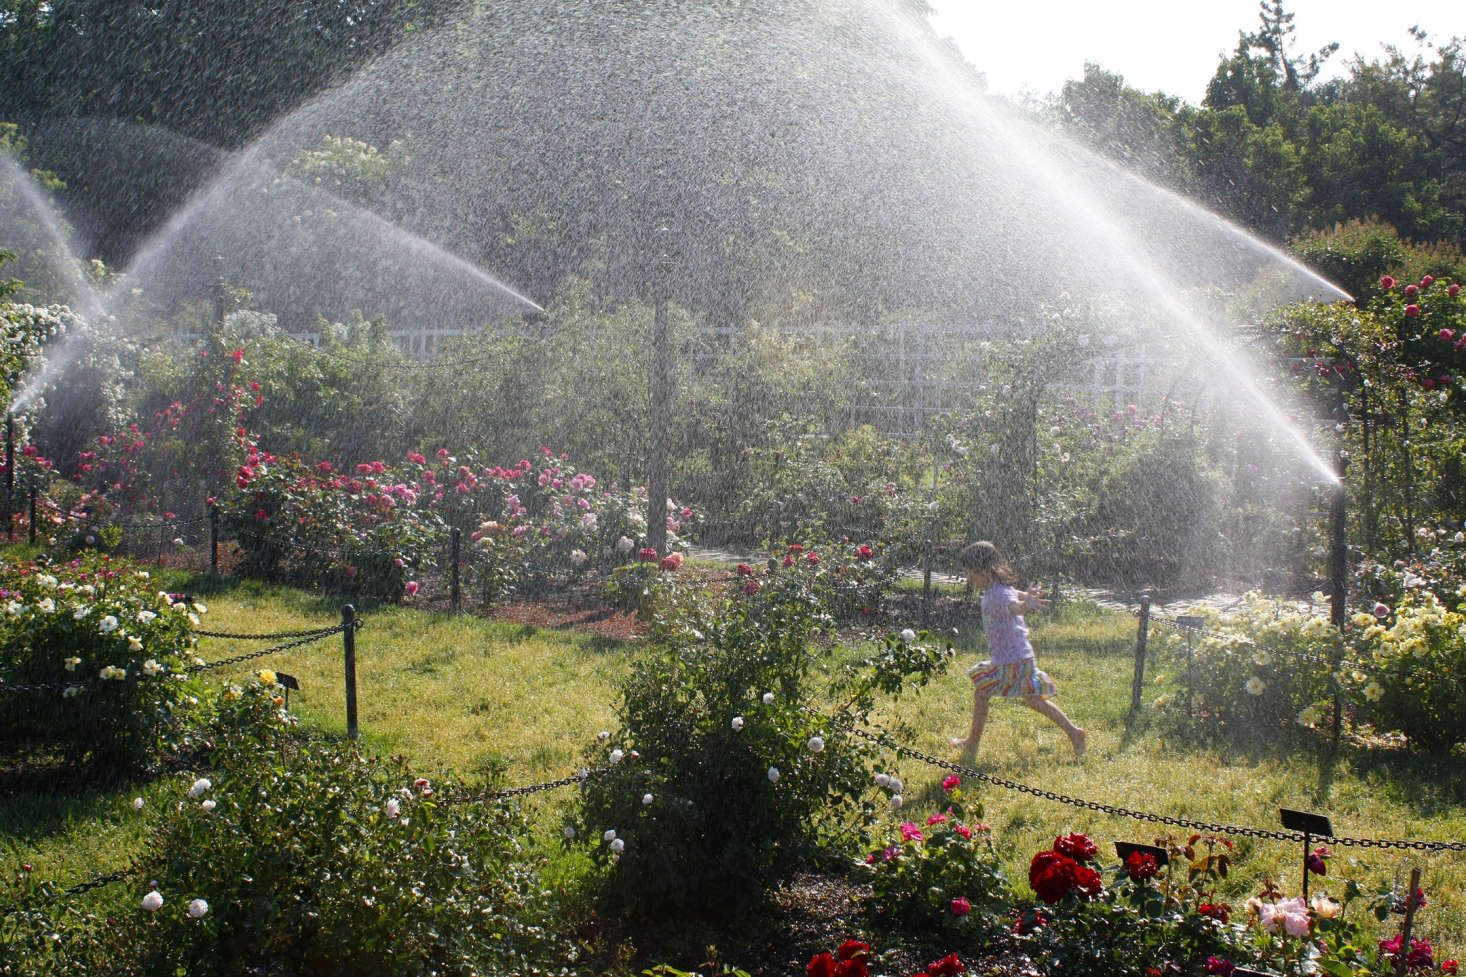 Well-timed sprinklers spray water in the Cranford Rose Garden at the Brooklyn Botanic Garden. Photograph by Marie Viljoen.